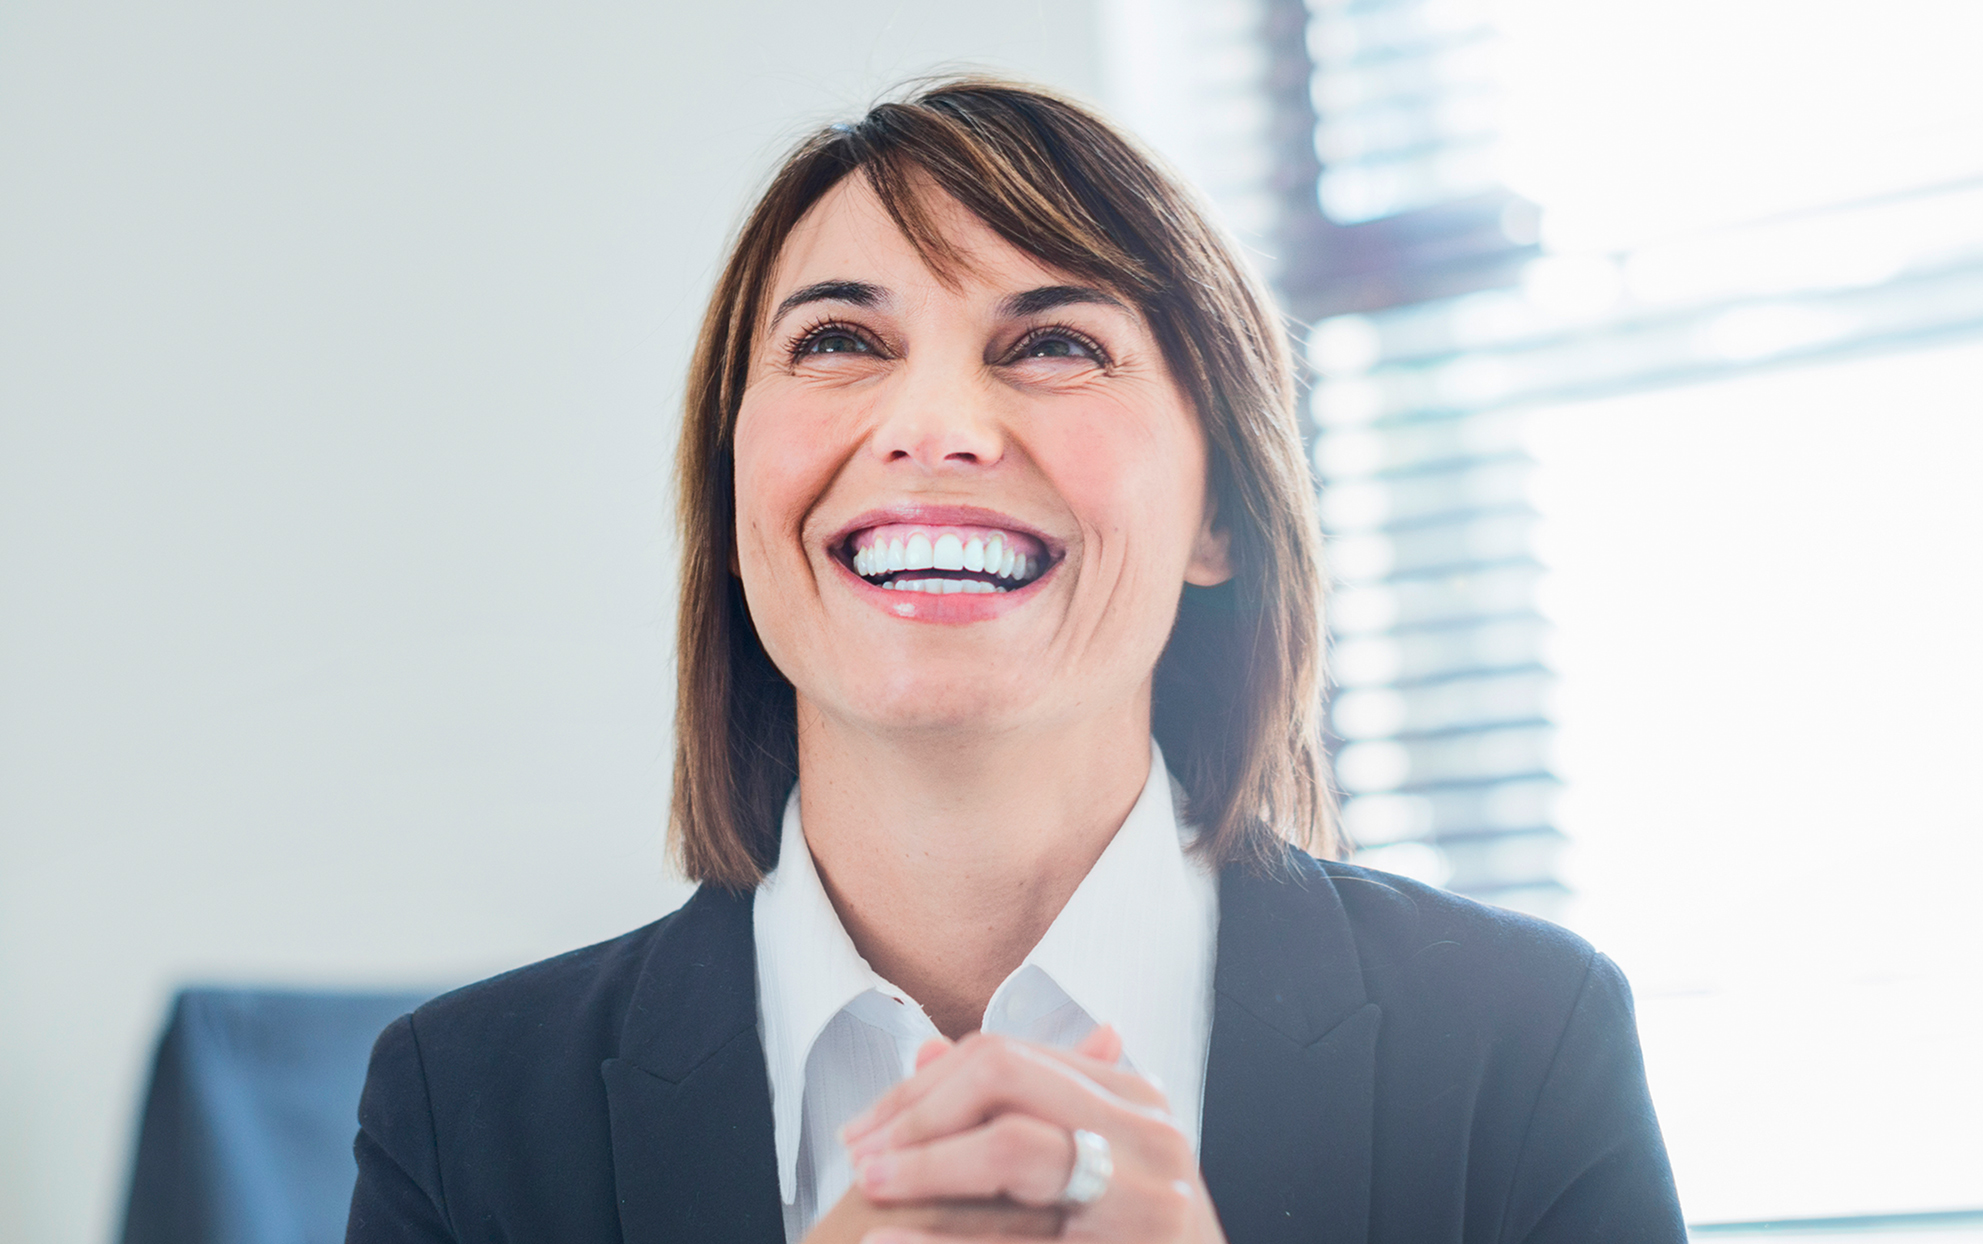 woman smiling in an office with short brown hair